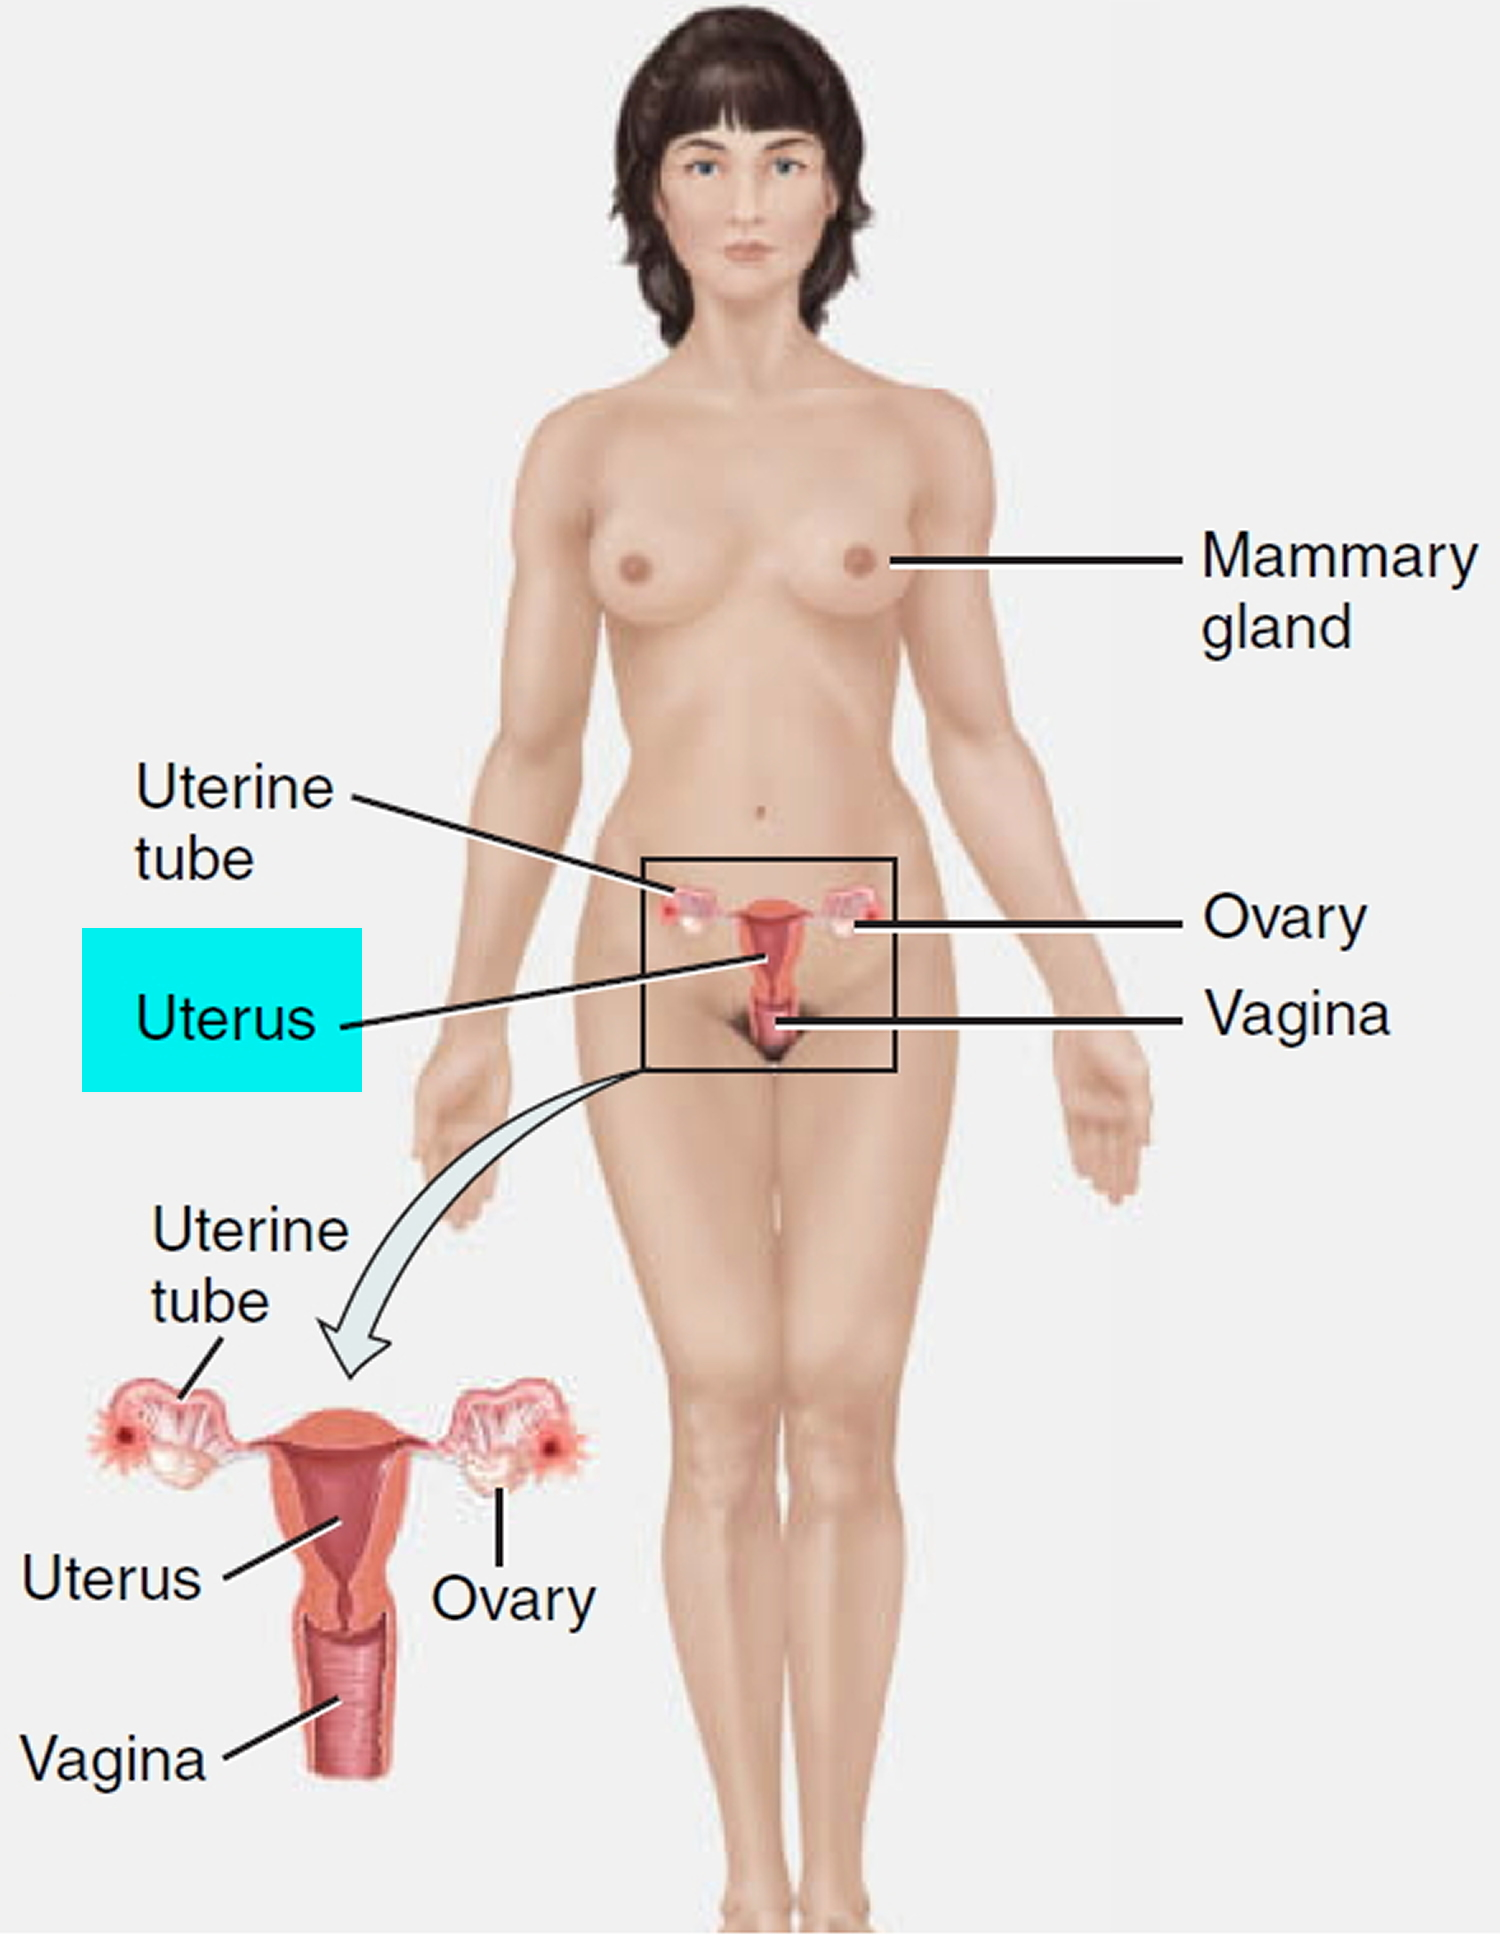 uterus location